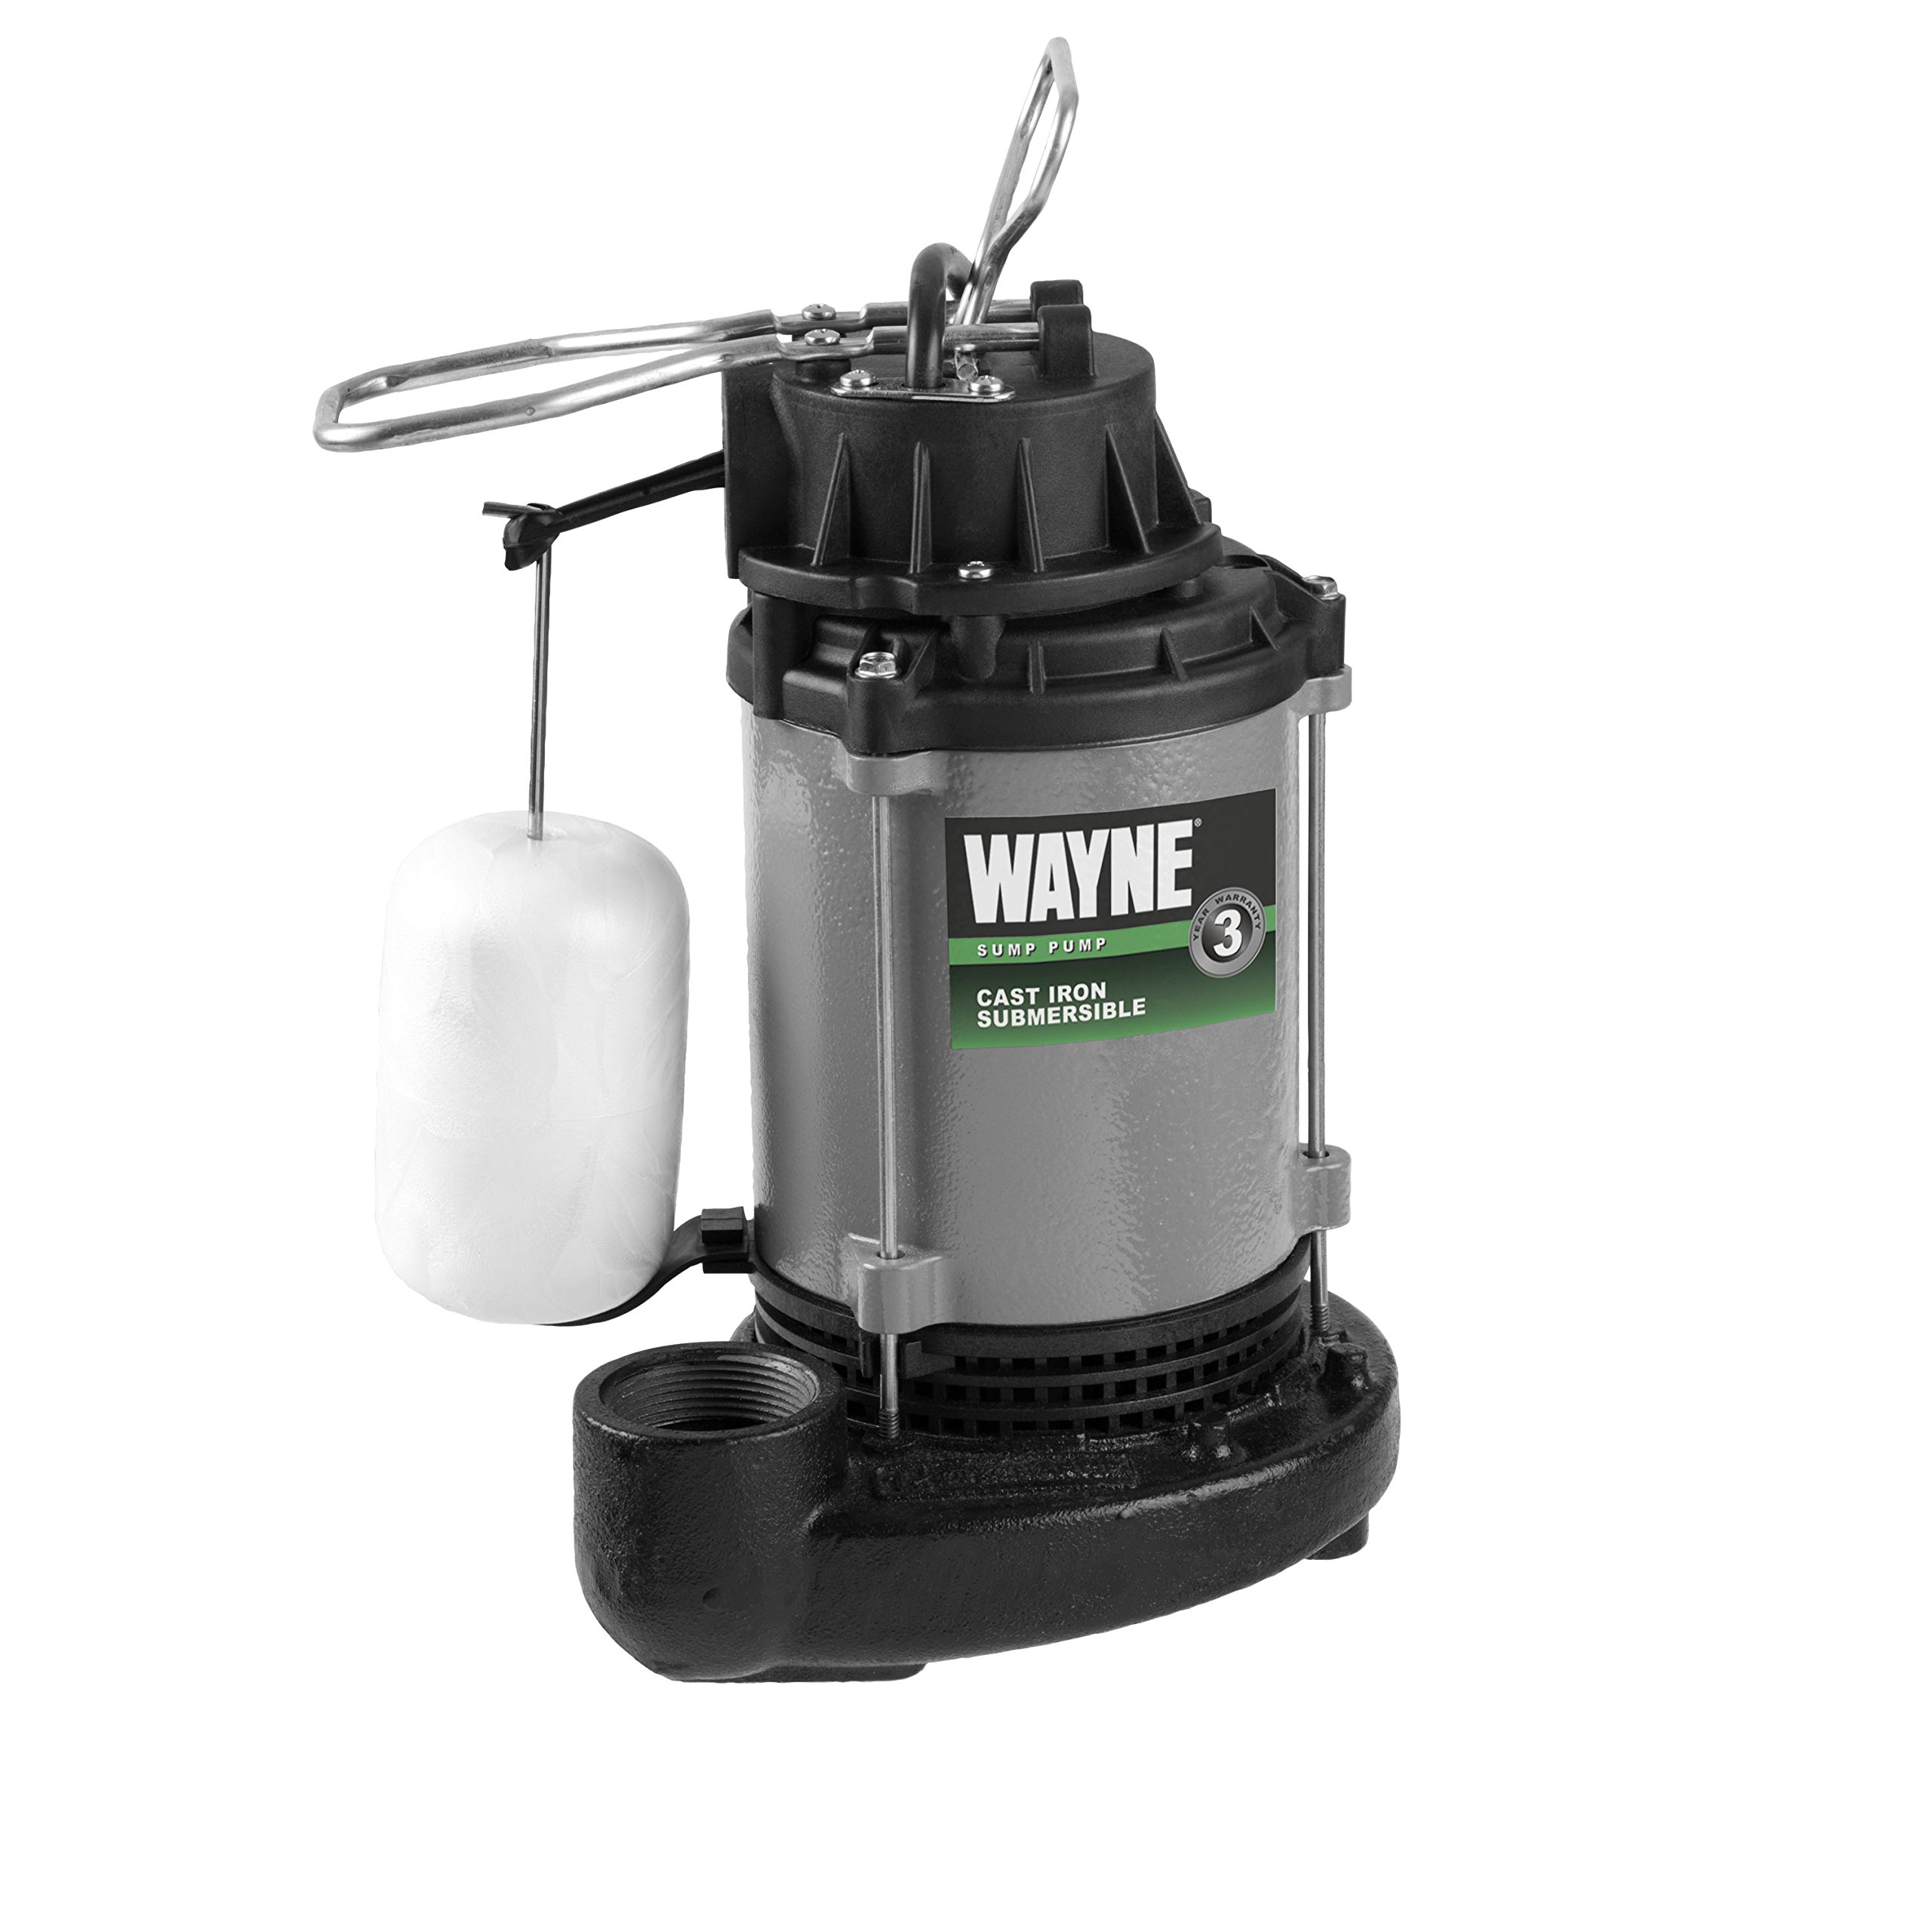 WAYNE CICDU790 1/3 HP Heavy Duty Cast Iron Submersible Sump Pump by Wayne (Image #1)